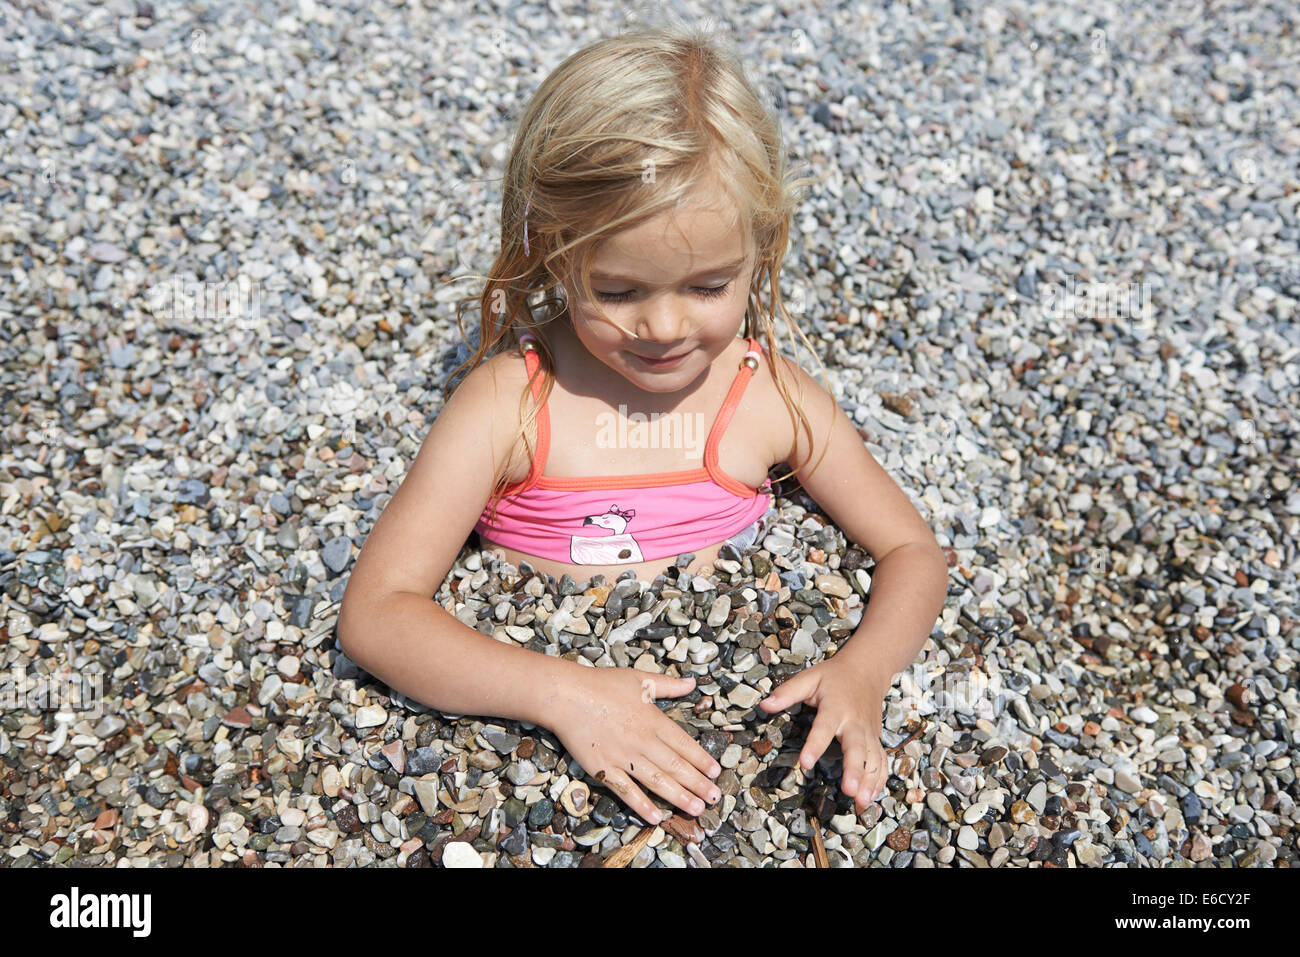 Child blond Girl buried in pebbles on beach, Lago di Garda, Lake, Torbole Nago, Italy - Stock Image